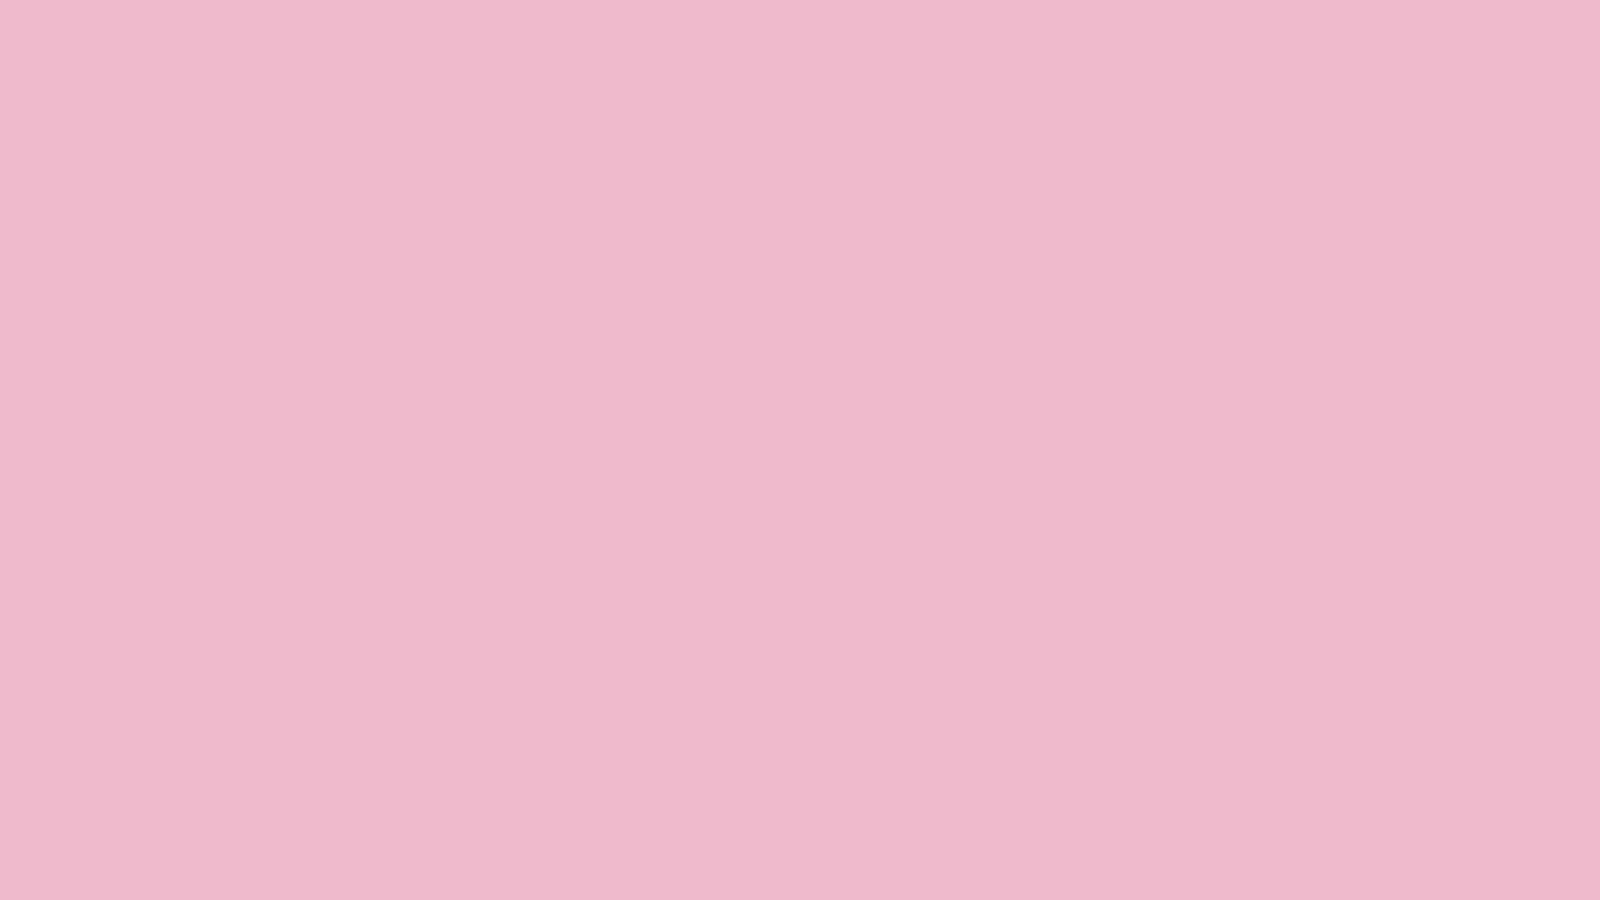 1600x900 Cameo Pink Solid Color Background